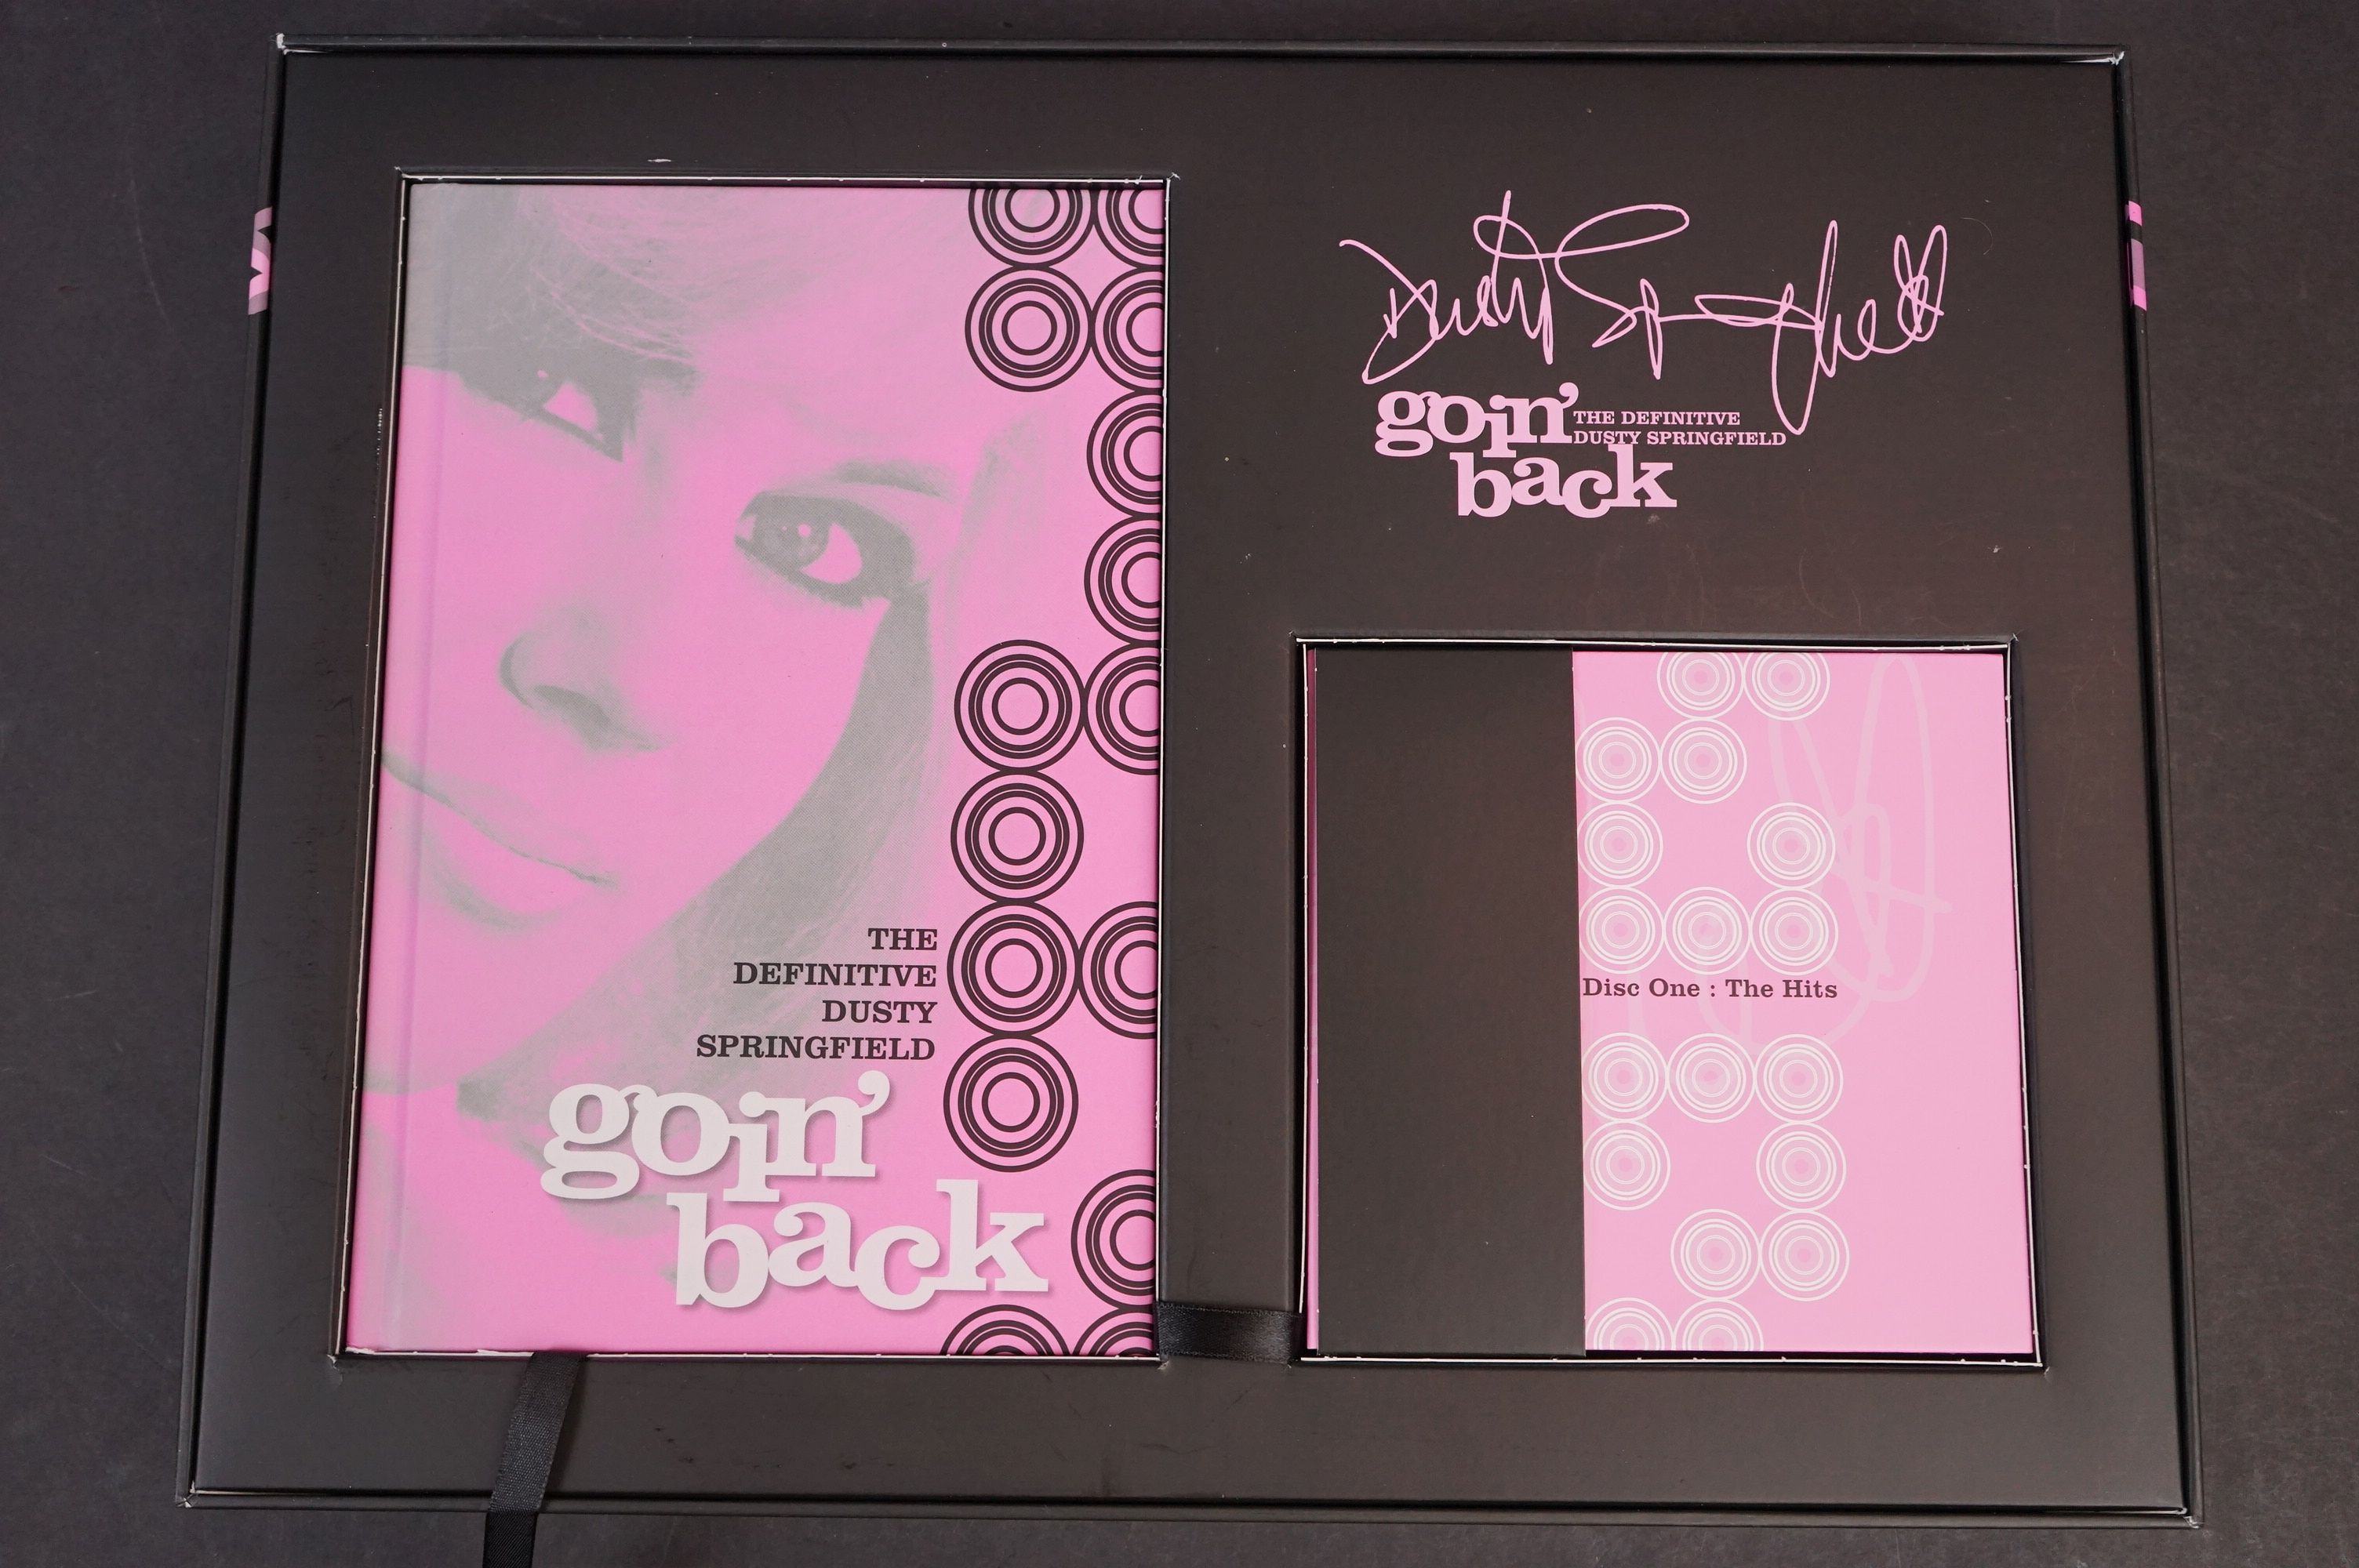 CD / DVD - Dusty Springfield Goin' Back The Definitive Box Set, ltd edn number 00128, ex with some - Image 2 of 8